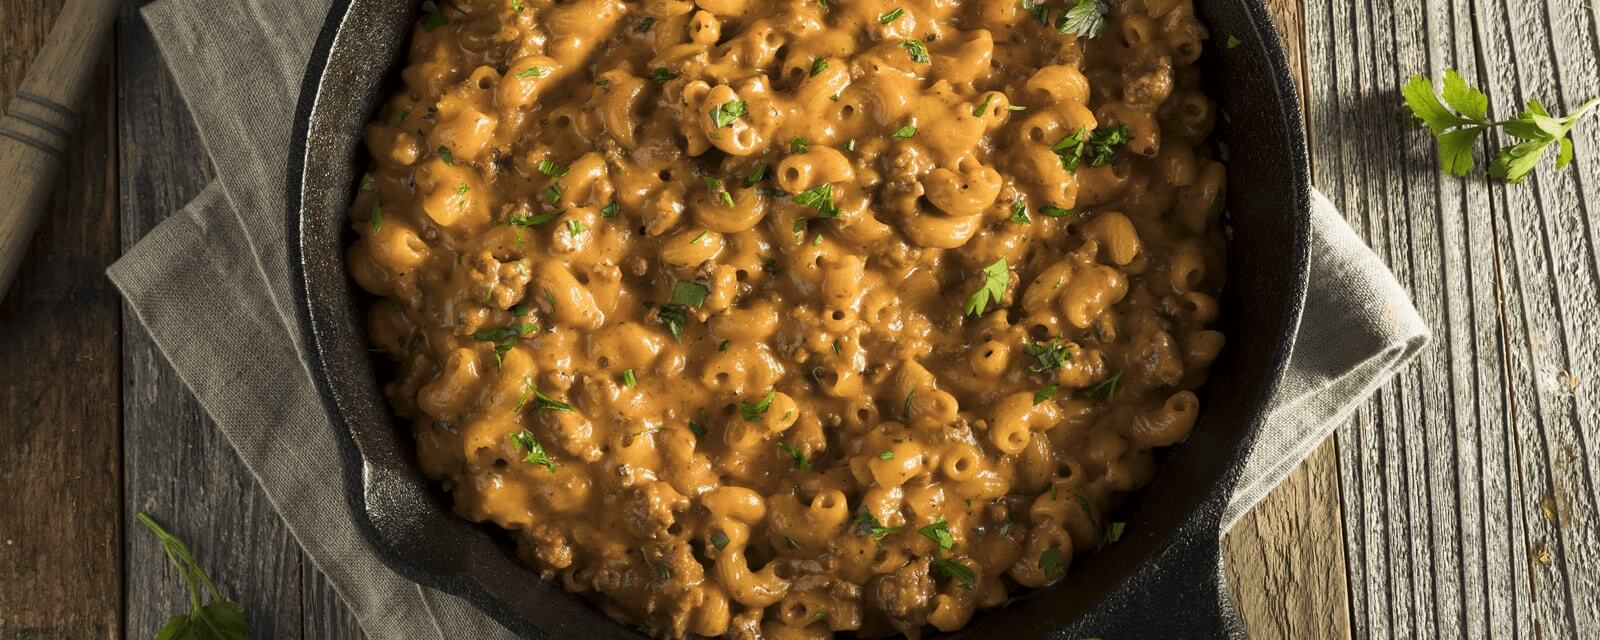 BEAR SAUSAGE MAC & CHEESE